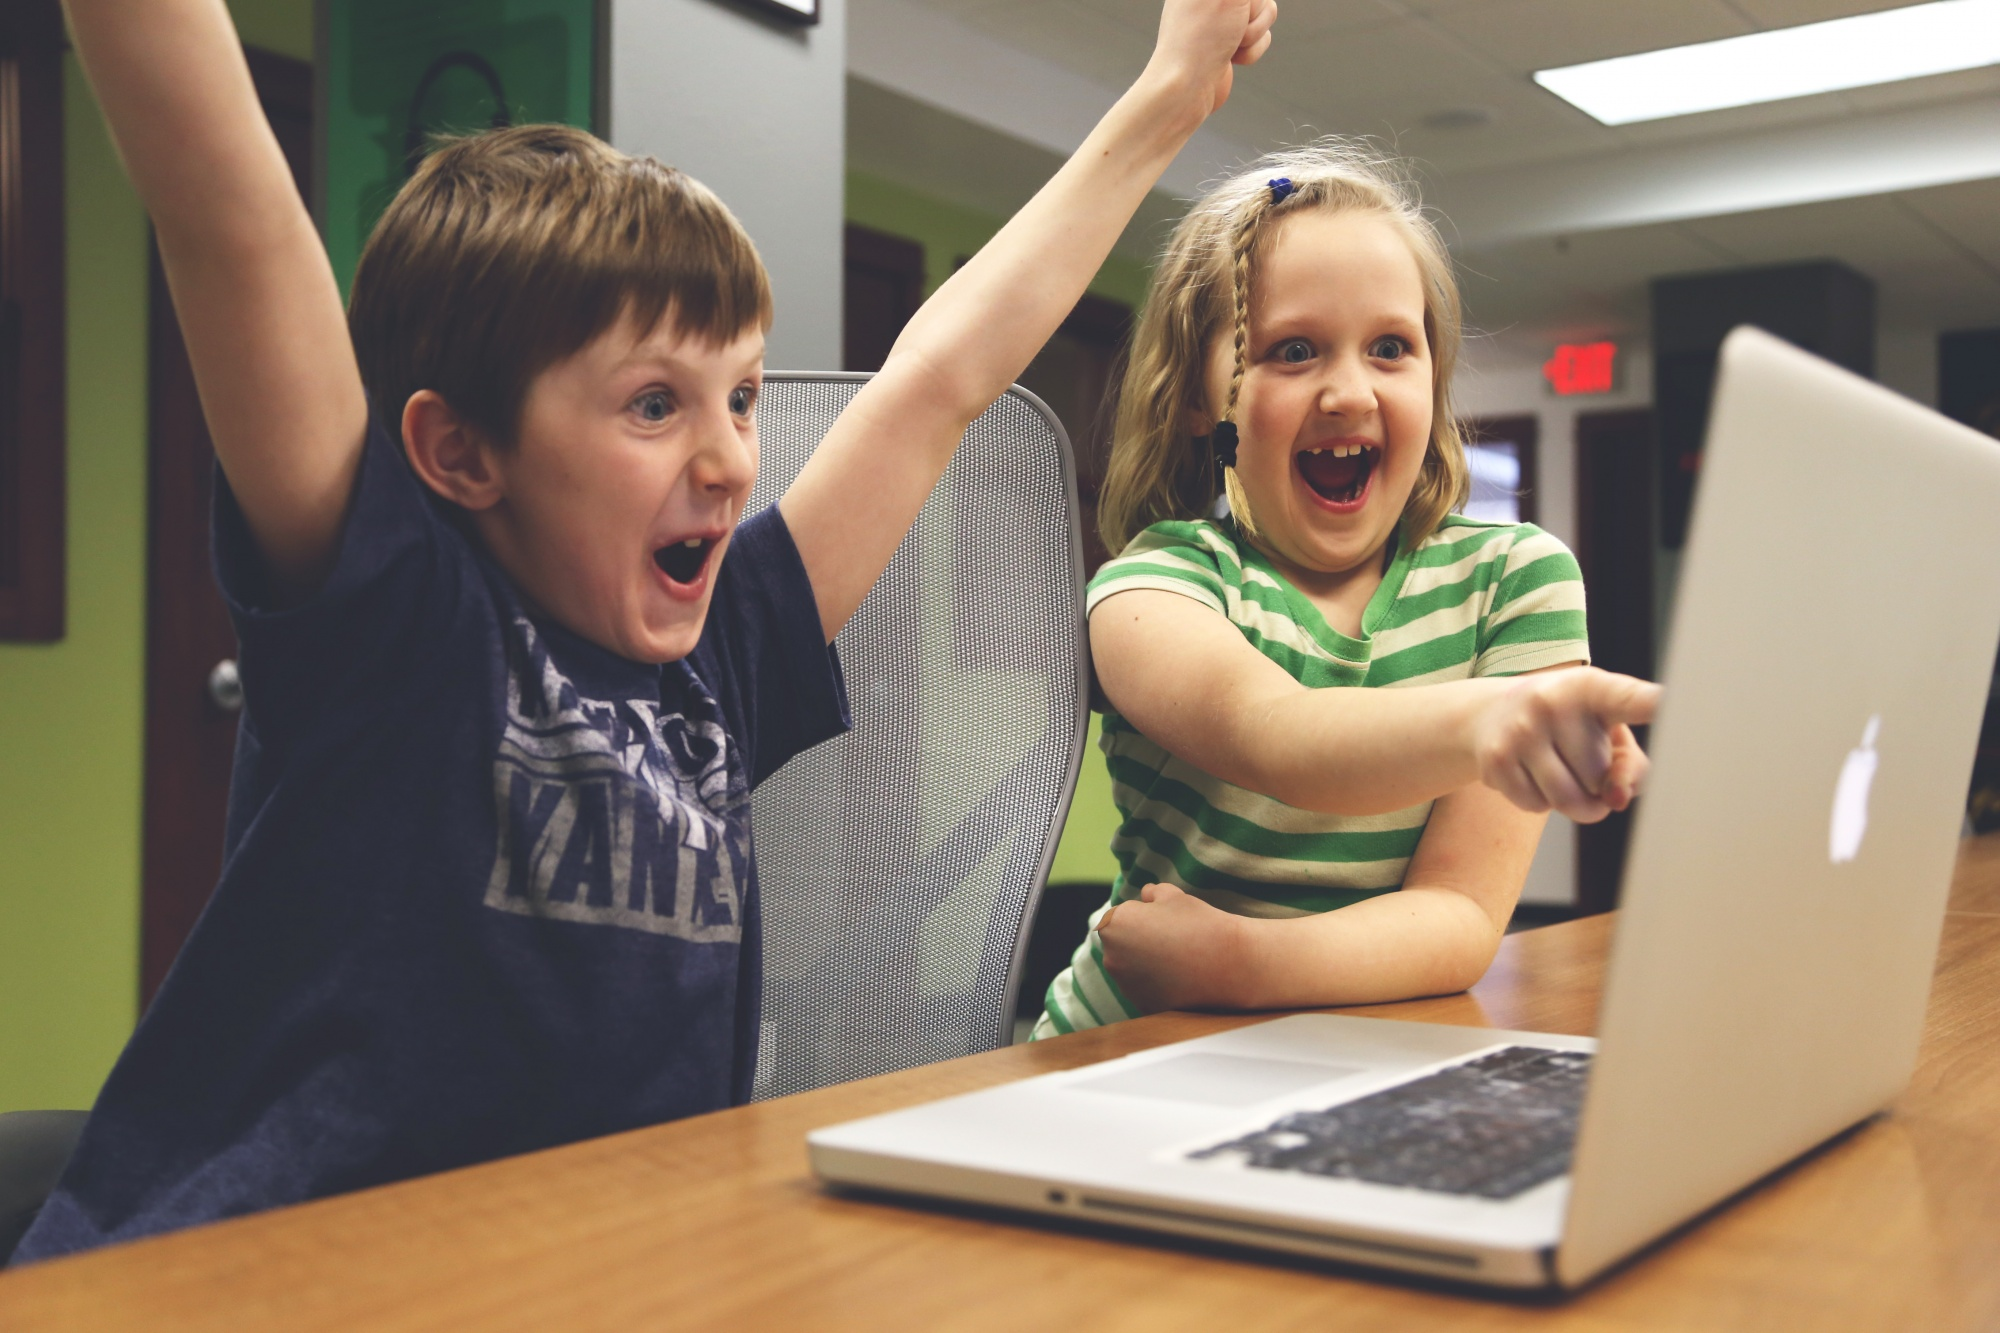 boss-fight-stock-images-photos-free-photography-kids-coding